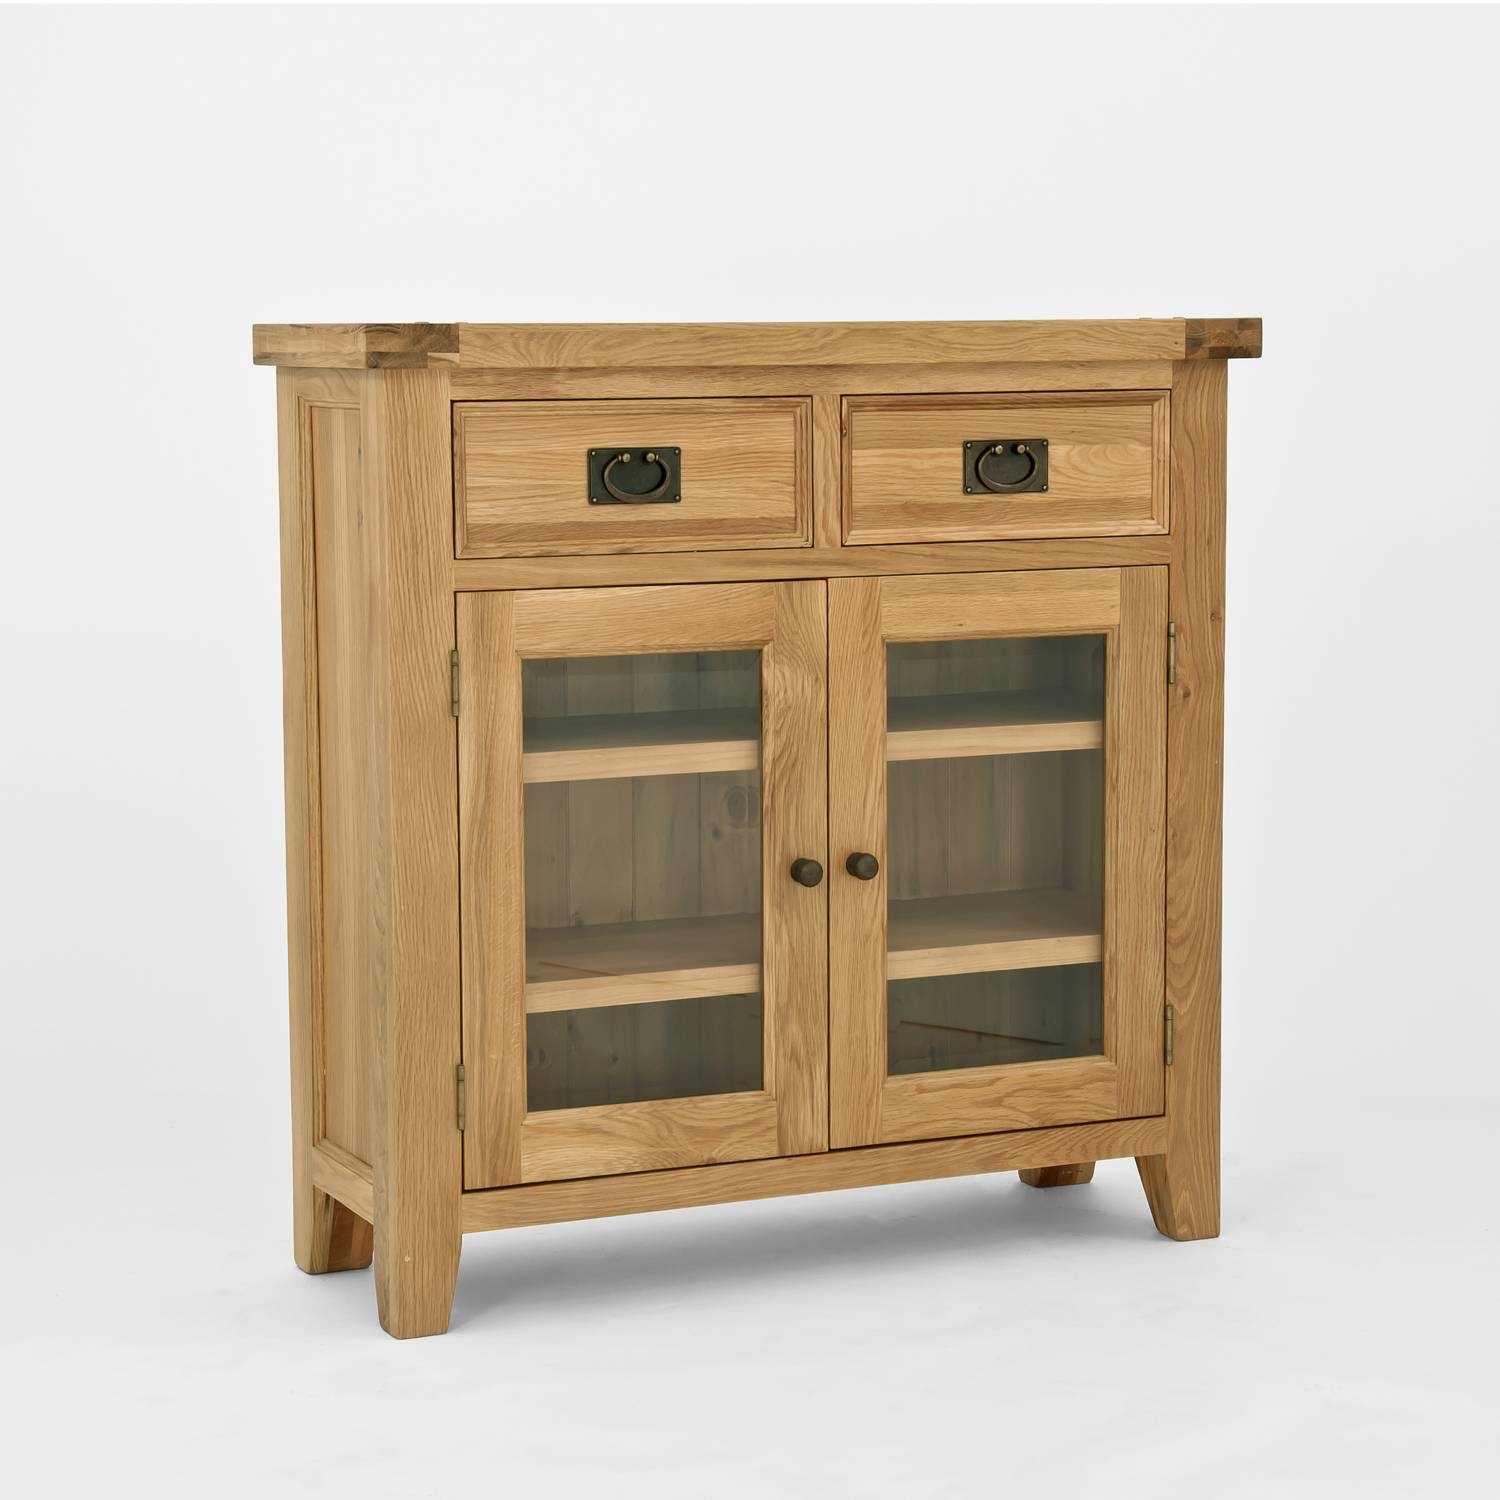 Chiltern Oak Small Sideboard/bookcase With Glass Doors regarding Sideboards With Glass Doors And Drawers (Image 3 of 15)